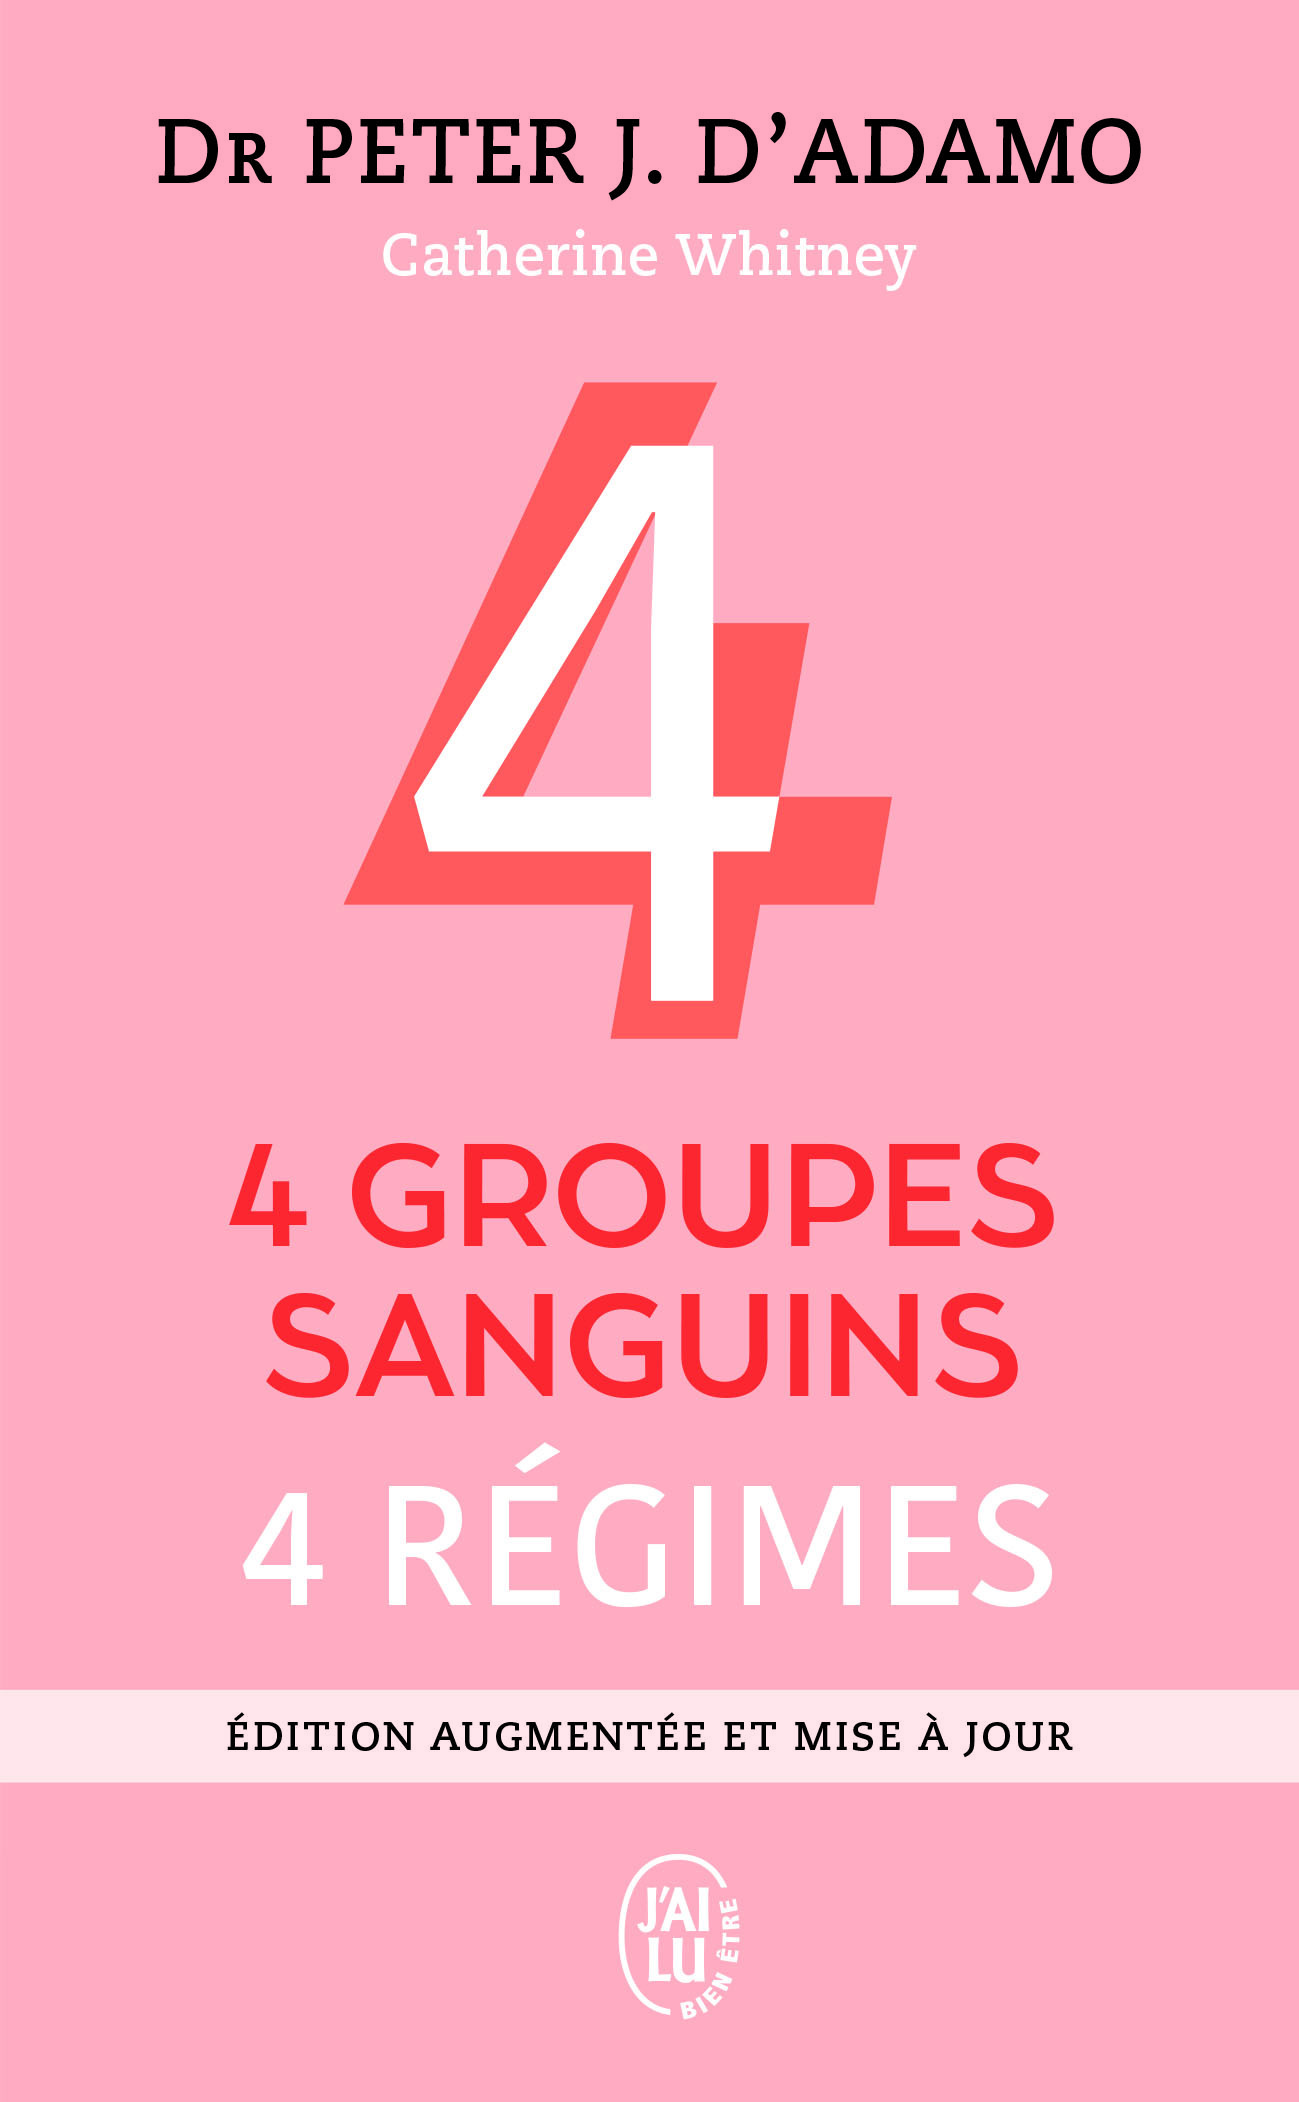 (NC) 4 GROUPES SANGUINS - 4 REGIMES